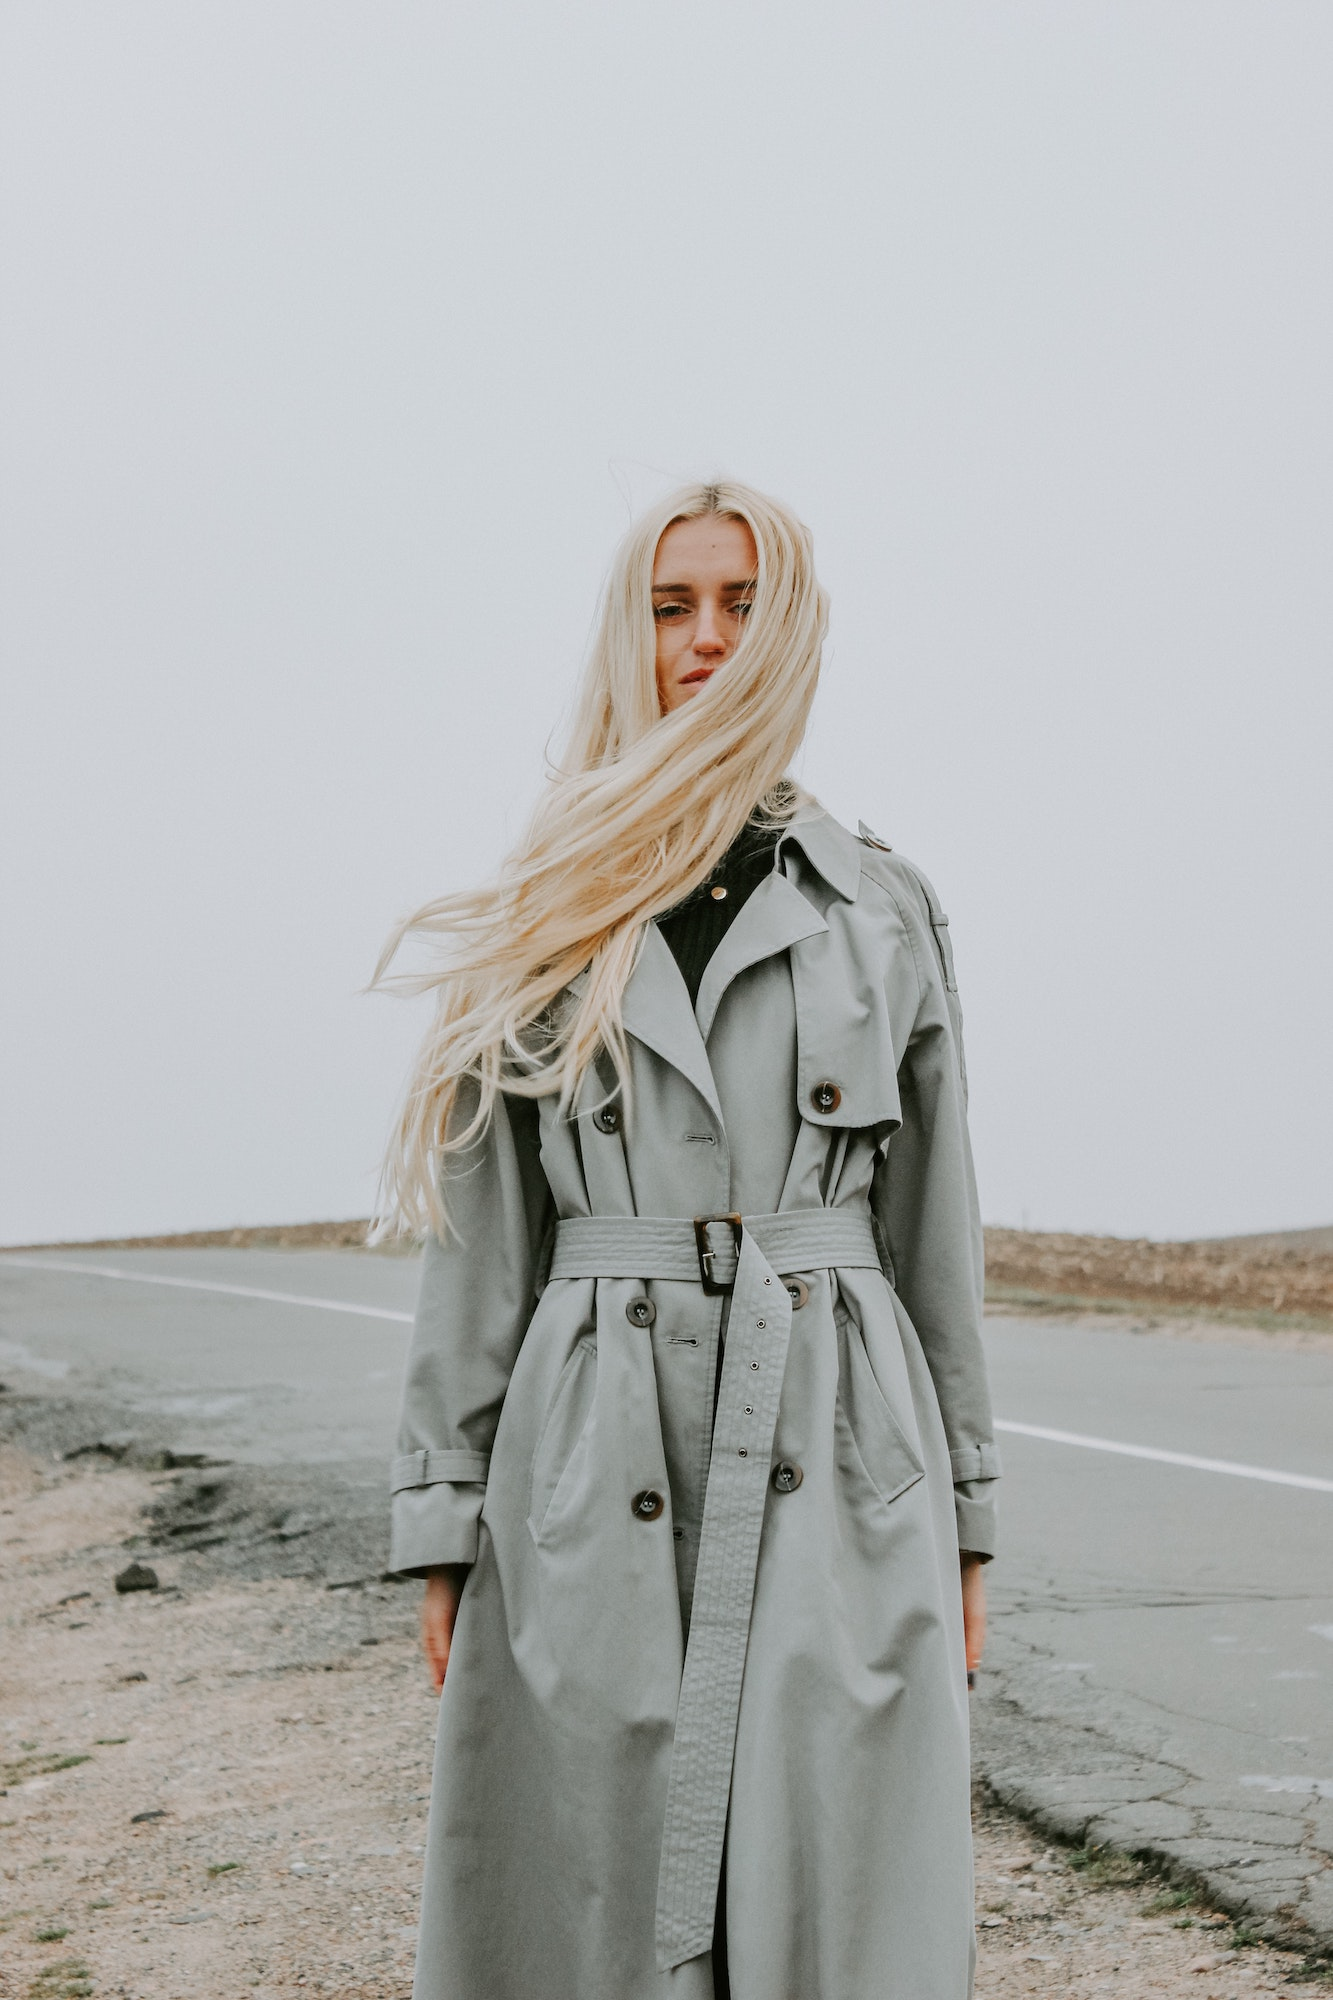 Blonde girl in trench coat   4 Tips For Creating A Greener Wardrobe For Sustainability   Fashion Tips & Guide   Elle Blonde Luxury Lifestyle Destination Blog